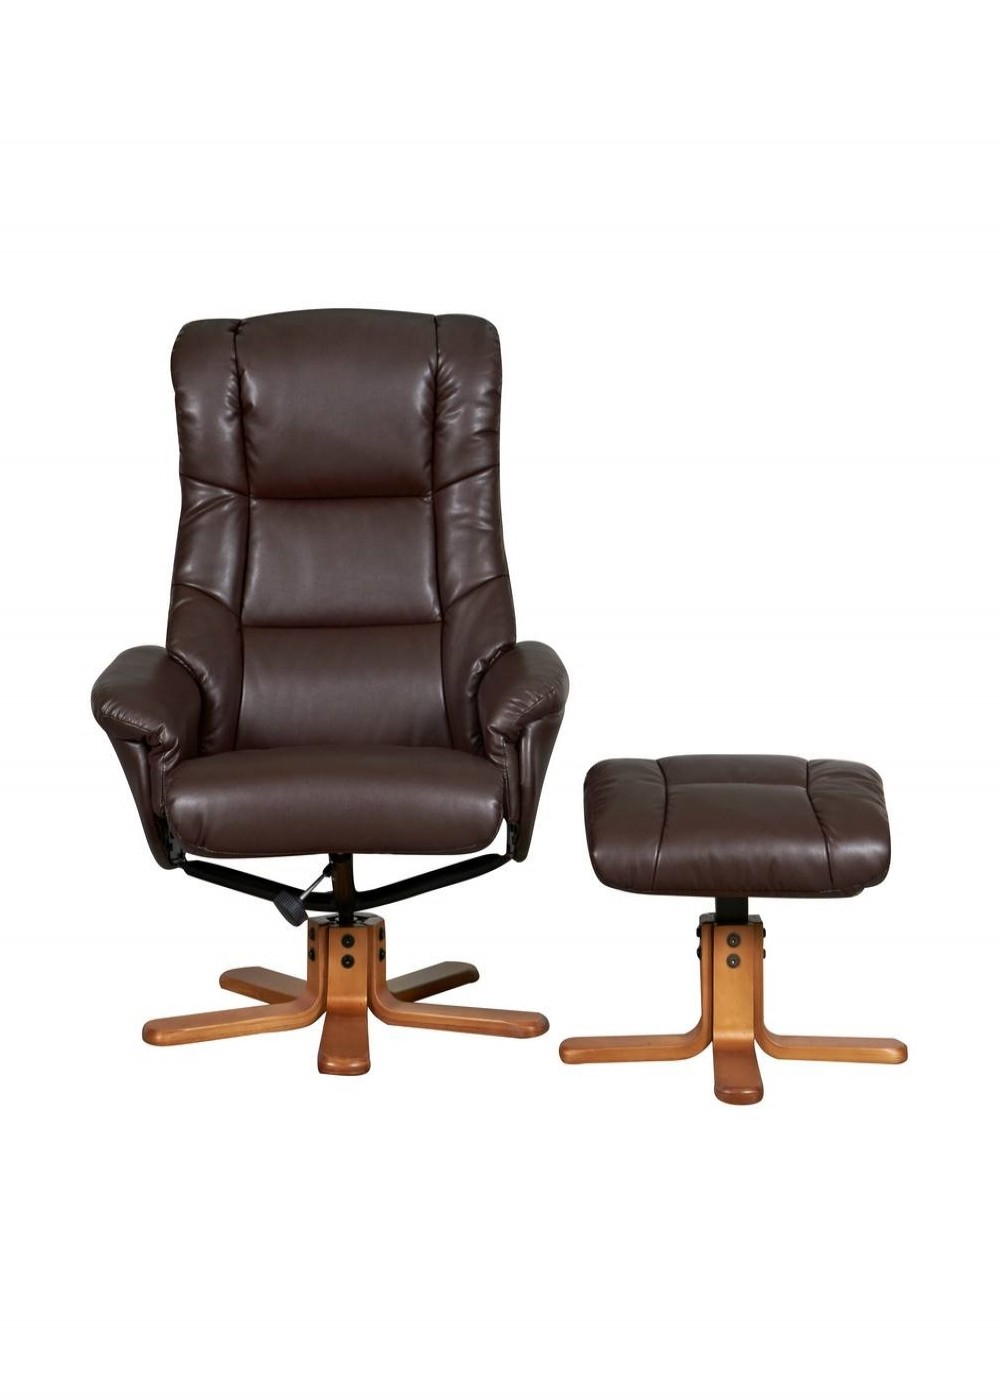 office recliner chair. Chicago Luxury Reclining Chair With Stool 6922 - Nut Brown Enlarged View Office Recliner